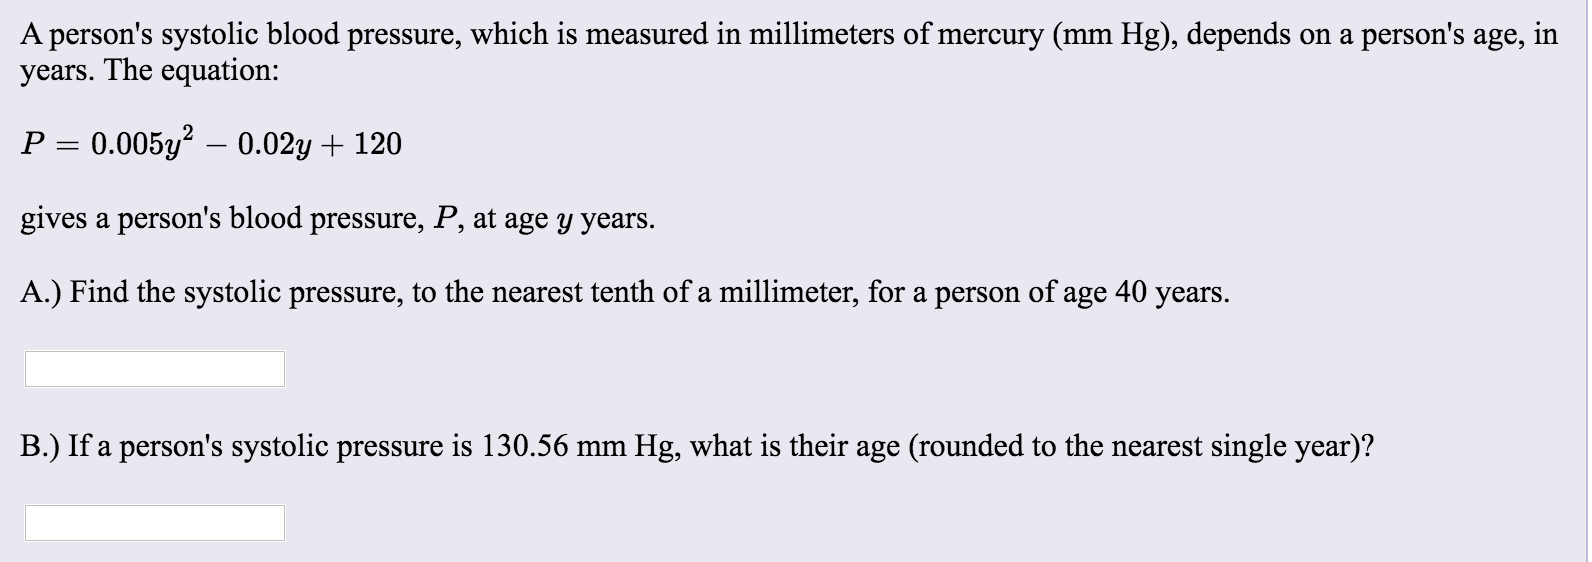 A persons systolic blood pressure, which is measured in millimeters of mercury (mm Hg), depends on a persons age, in years.